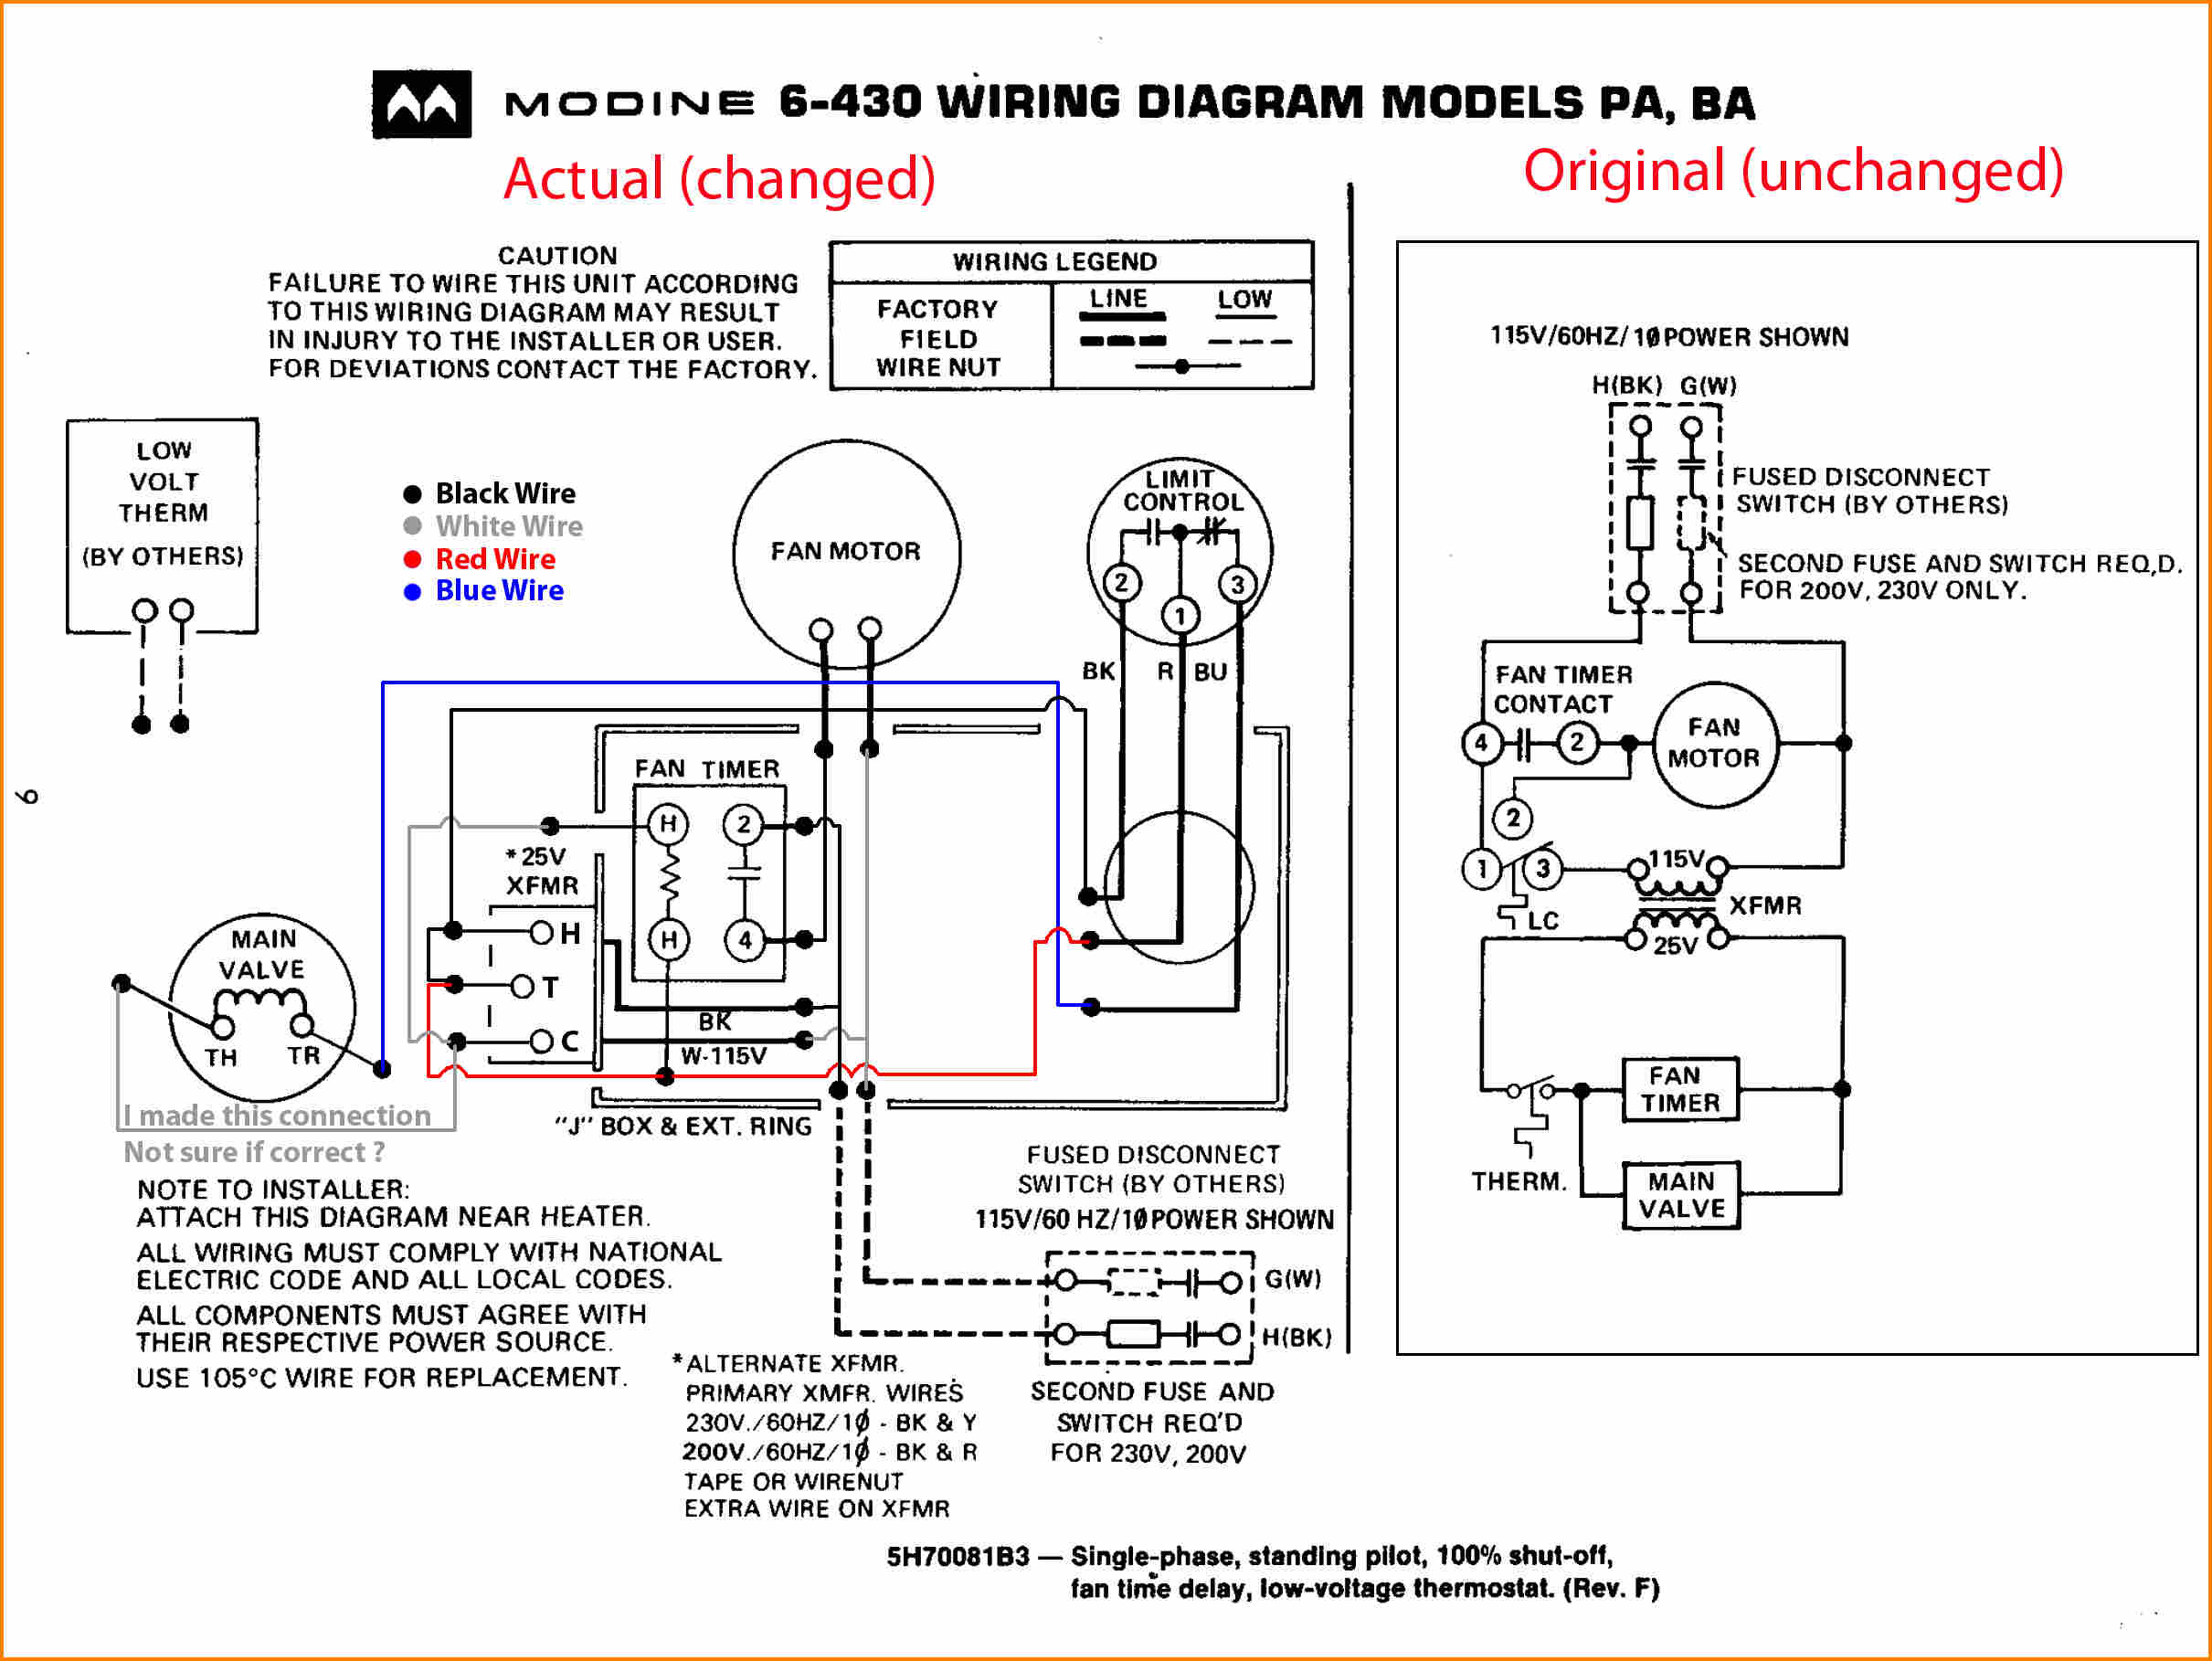 ge furnace blower motor wiring diagram Collection-Ge Furnace Blower Motor Wiring  Diagram Goodman Electric. DOWNLOAD. Wiring Diagram ...